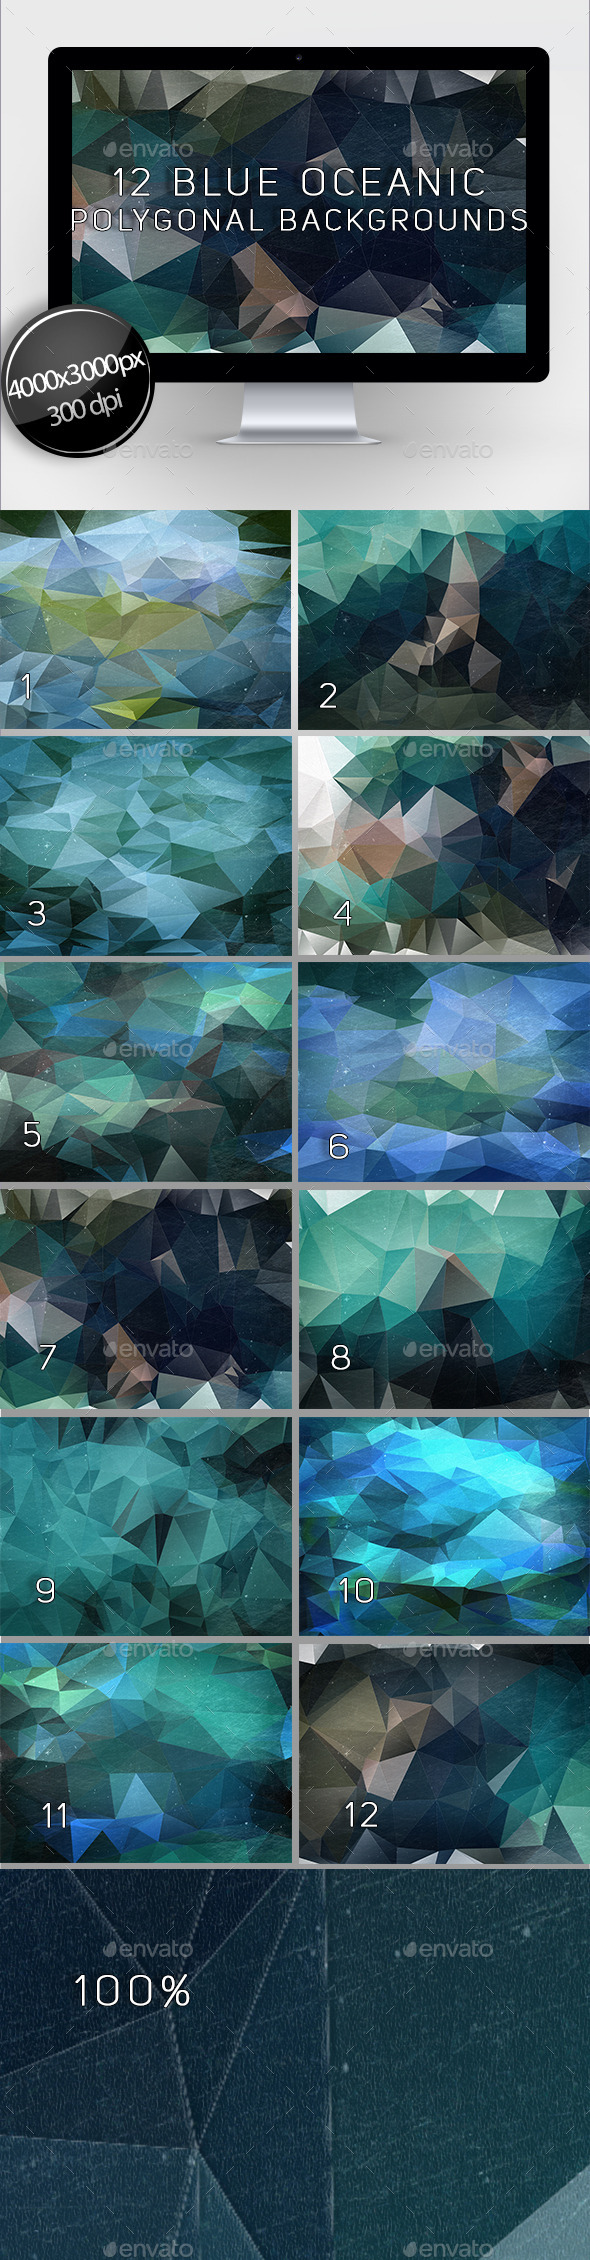 12 Blue Oceanic Polygonal Backgrounds - Abstract Backgrounds